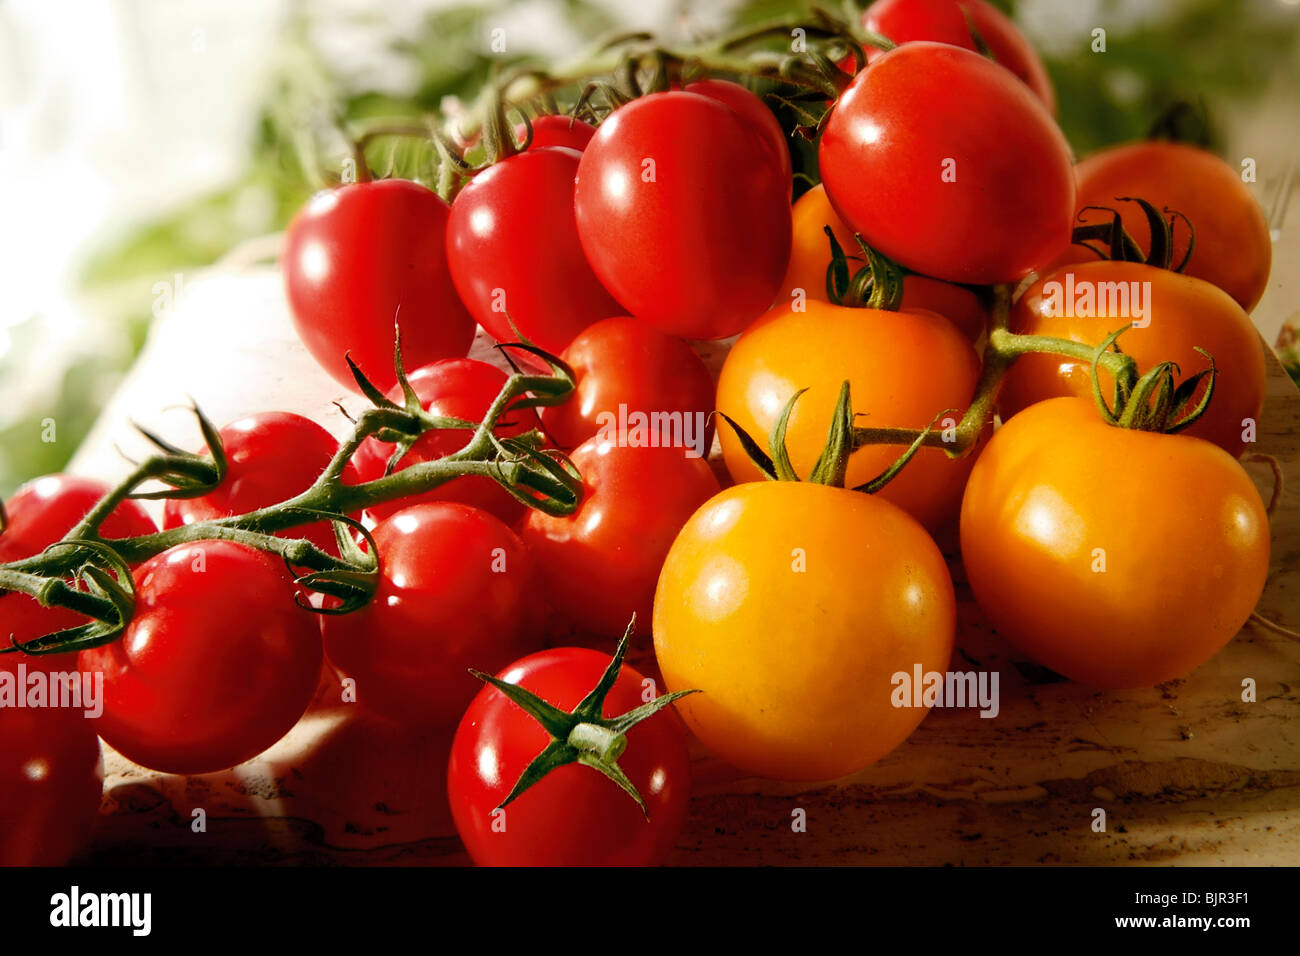 Selection of fresh red and yellow tomatoes and plum tomatoes food photography - Stock Image